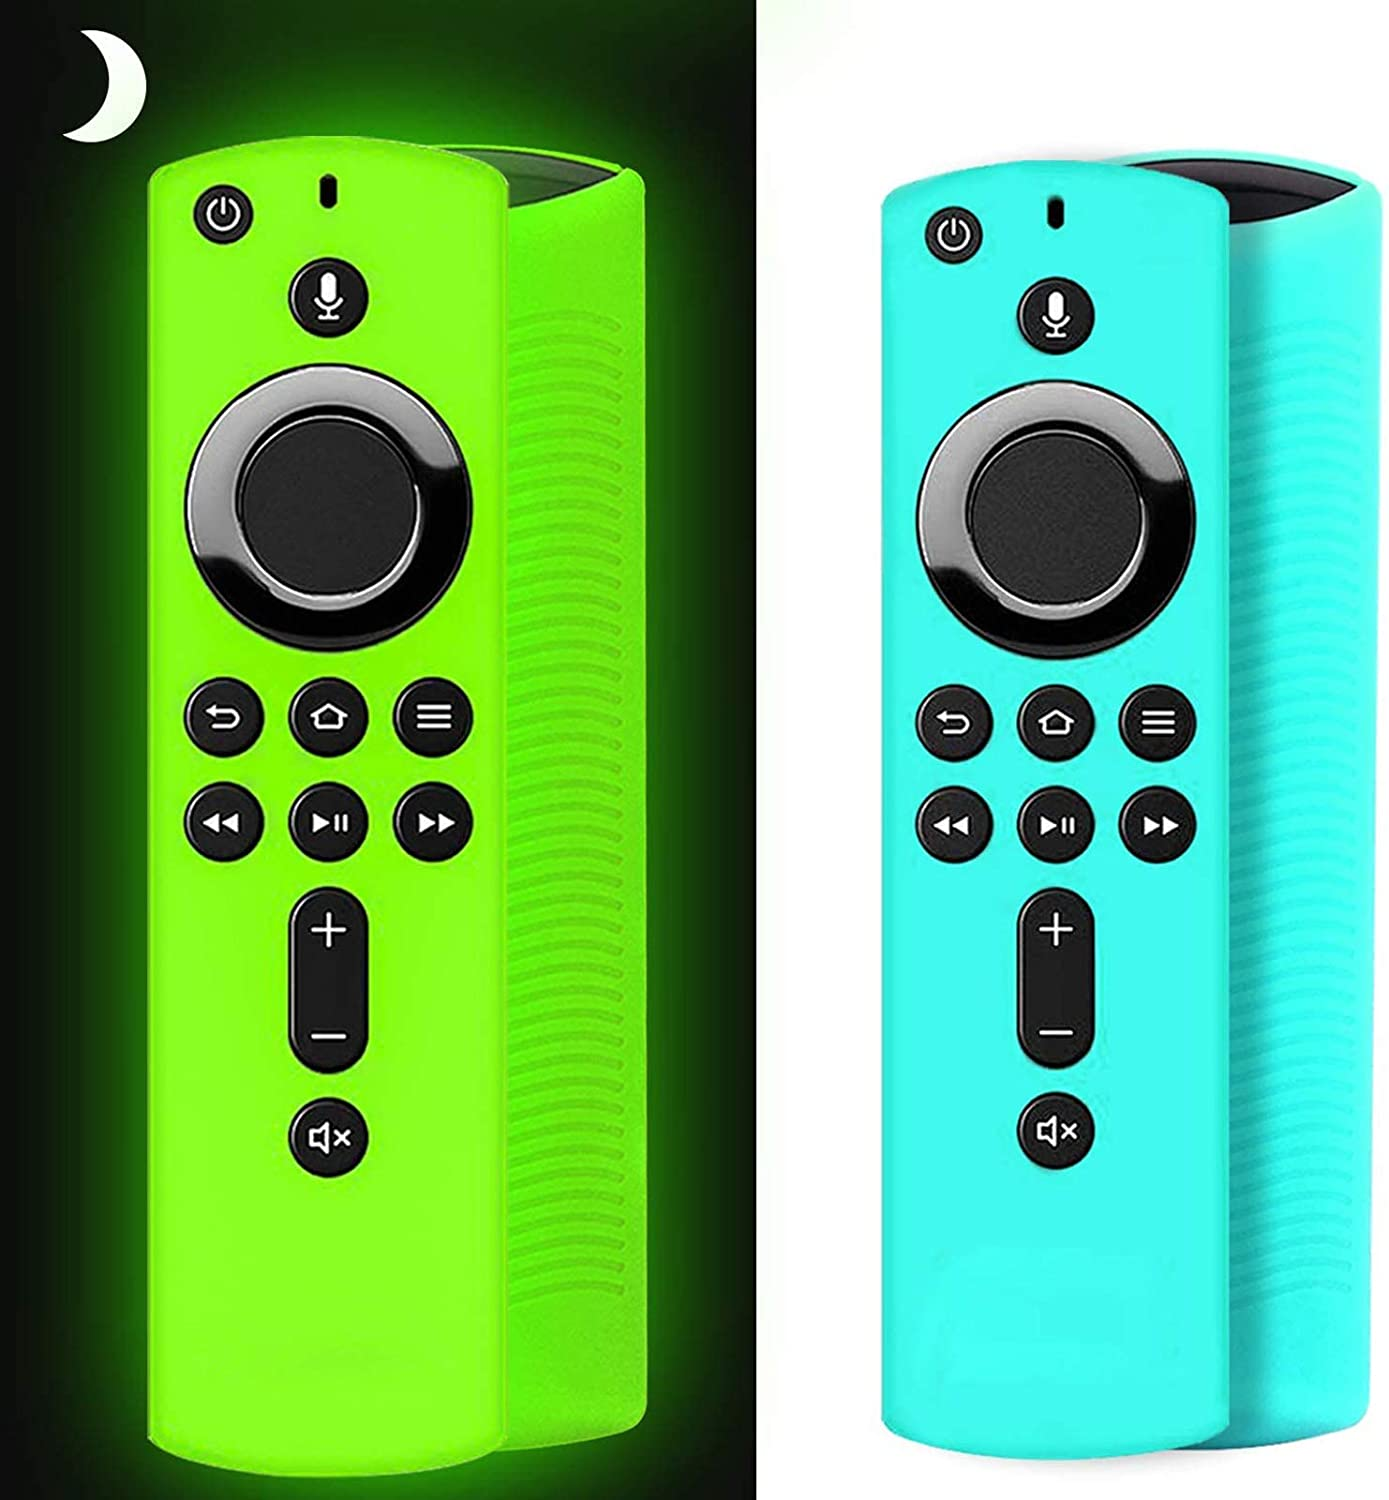 [2 Pack ] Firestick Remote Cover Case, Silicone Fire Remote Cover Case Compatible with 4K Firestv Stick, Firetv Remote Cover Case, Shockproof Firetv Remote Cover (Green Glow& Sky Blue Not Glow): Home Audio & Theater